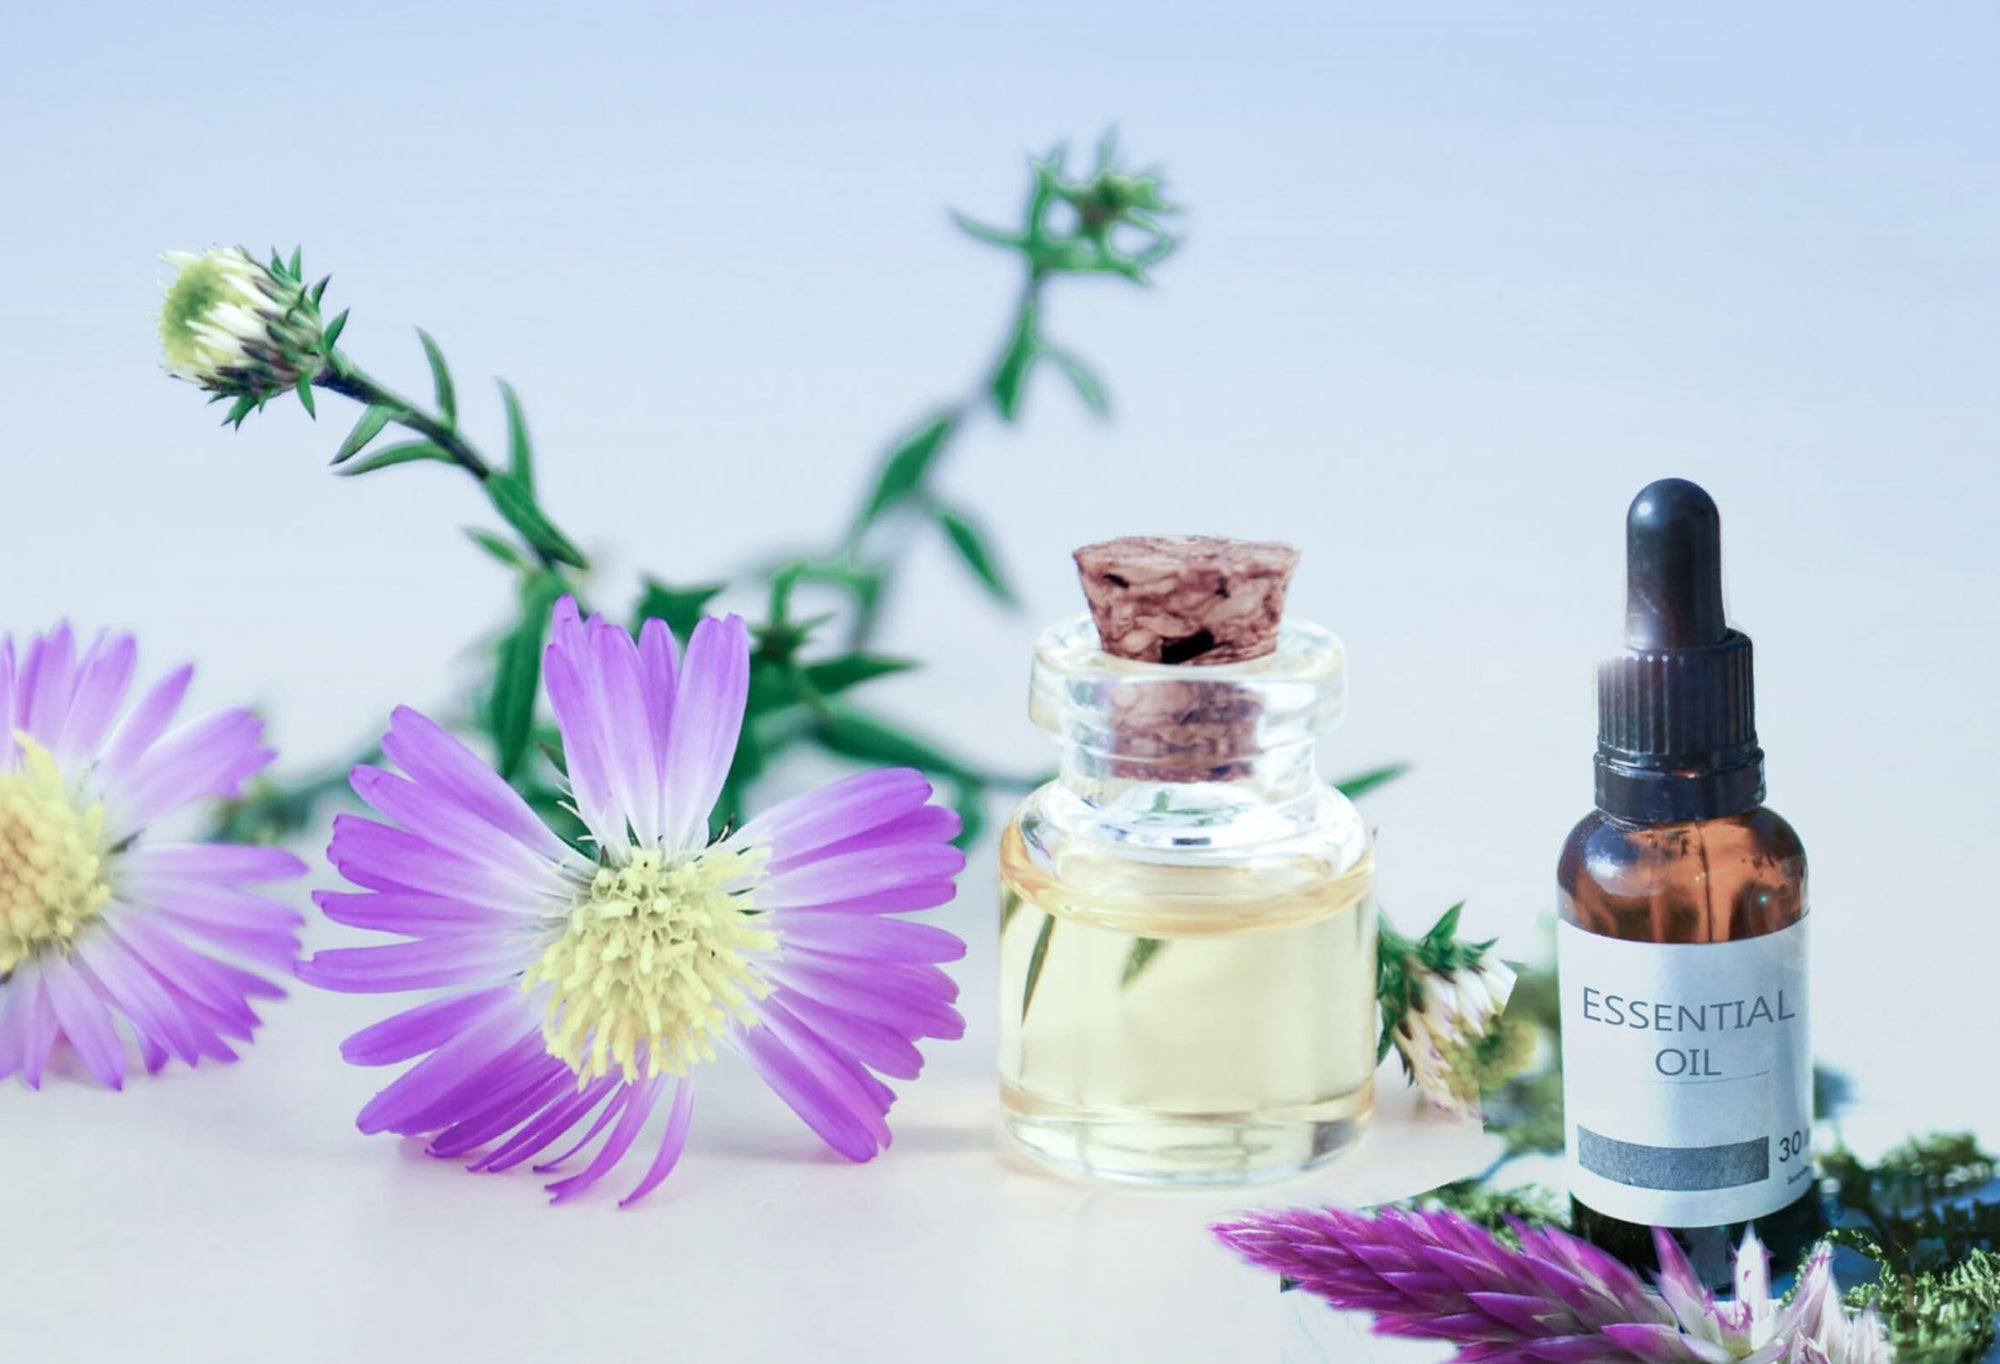 What Using Essential Oils Says About You